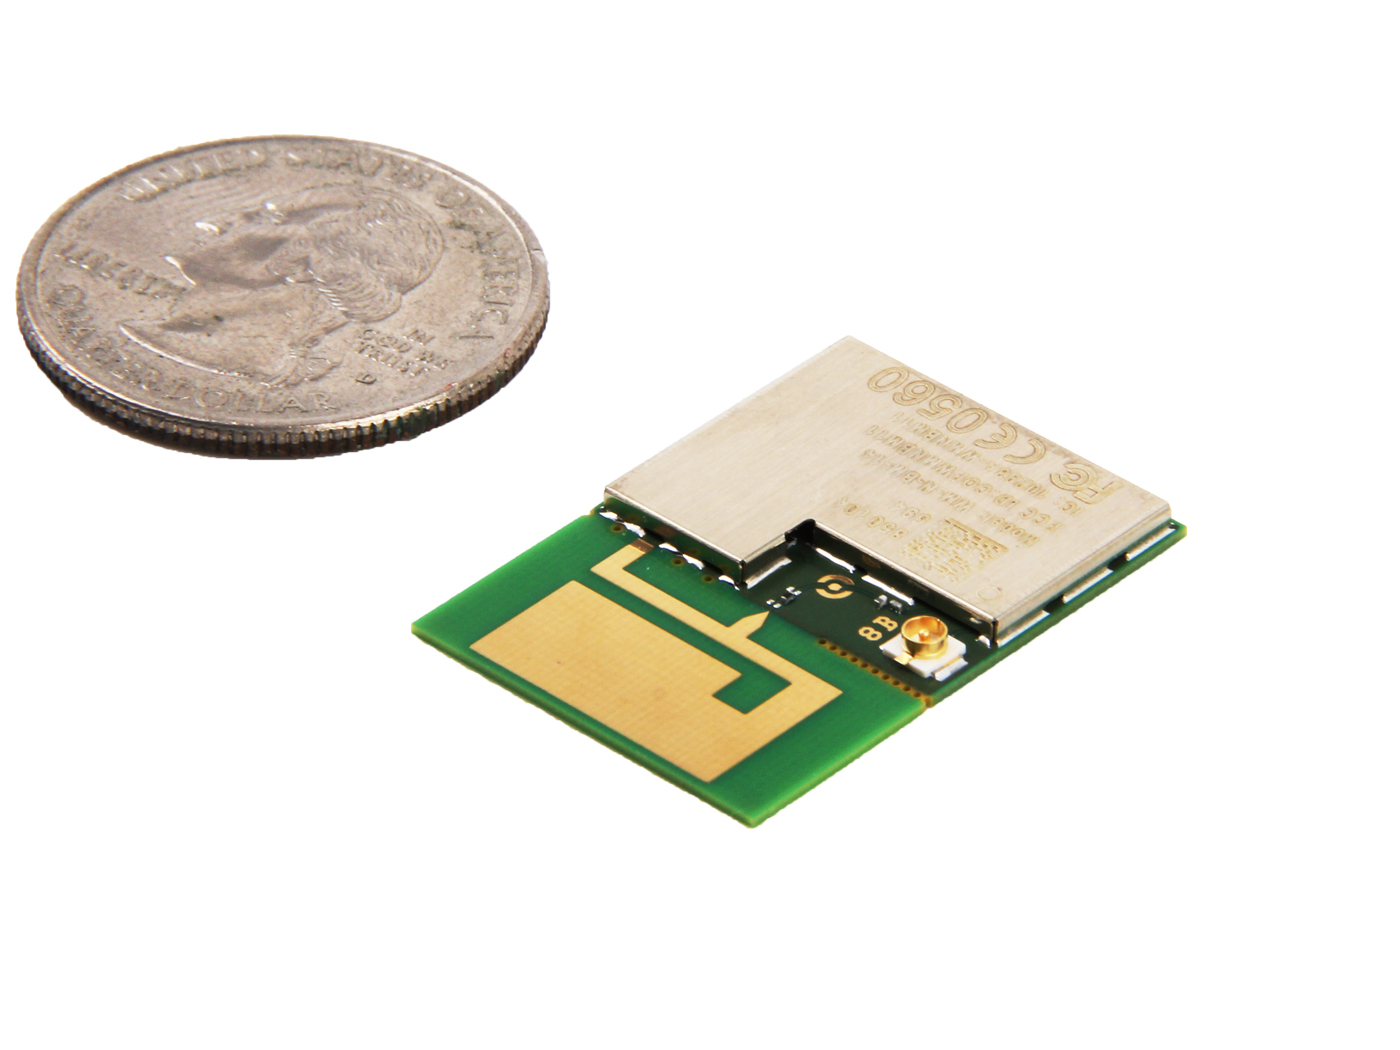 P1 - Particle Wi-Fi Module with Antenna